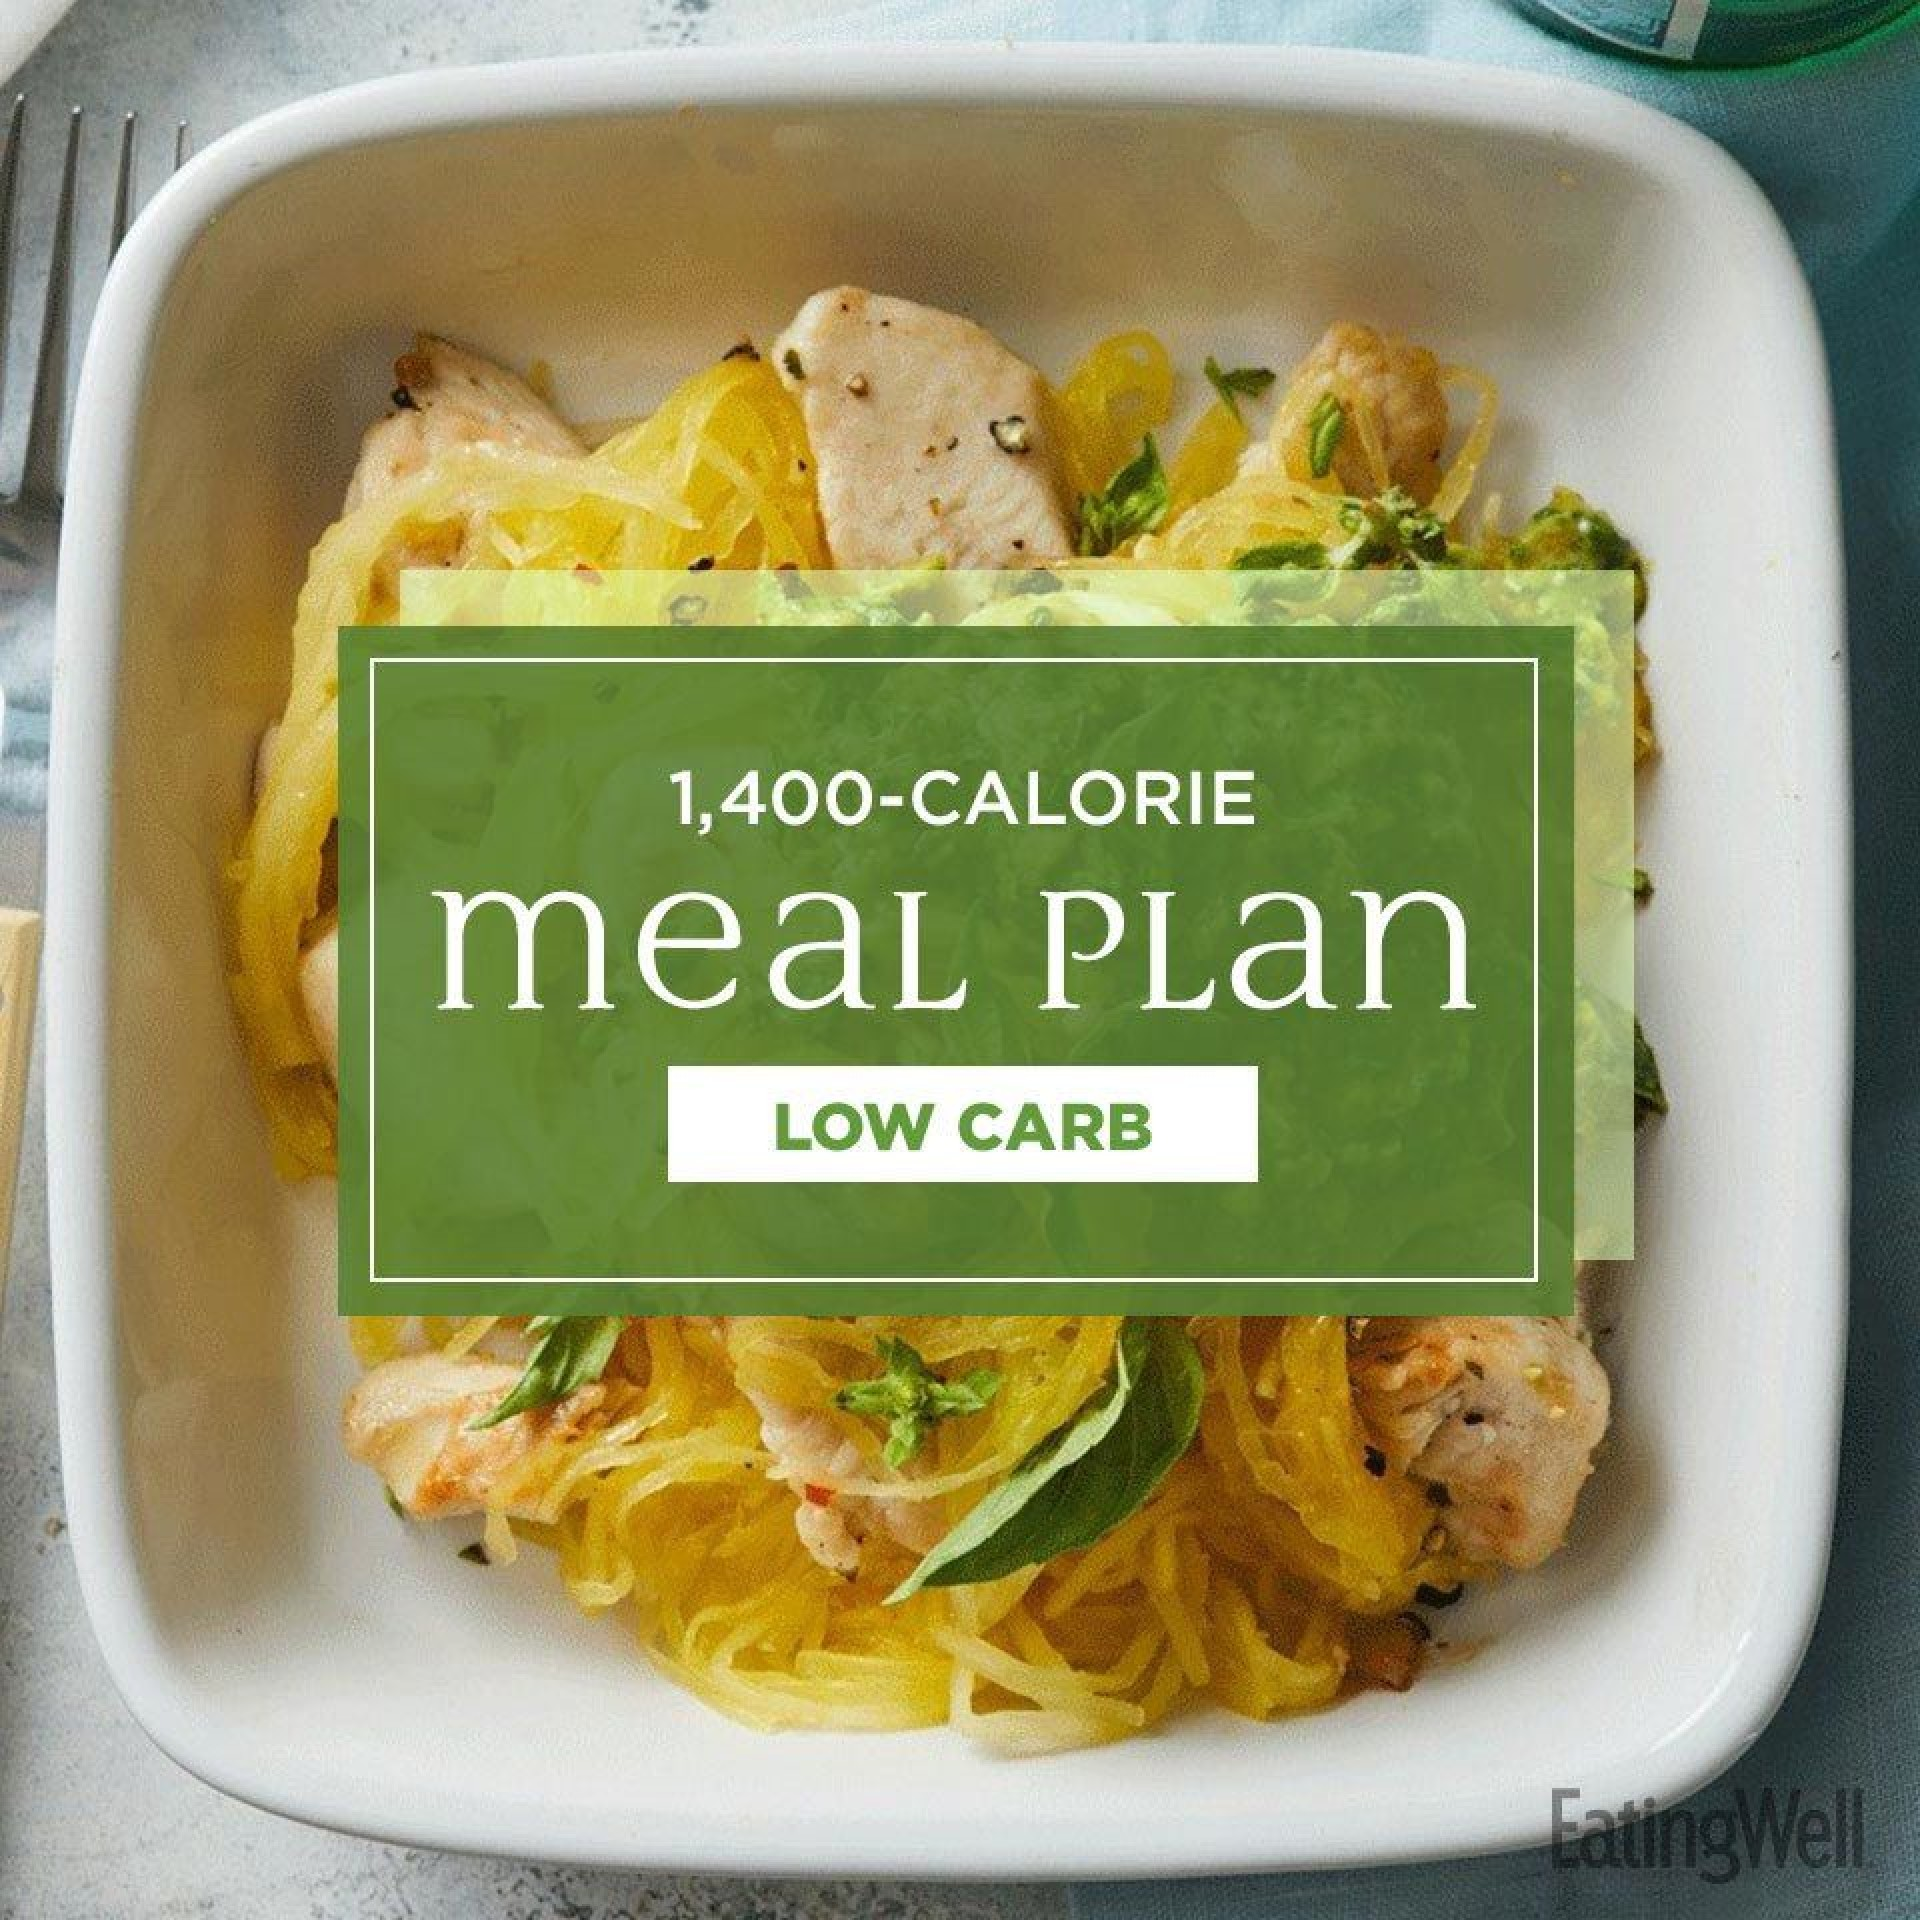 004 Exceptional 1400 Calorie Sample Meal Plan Pdf High Definition 1920